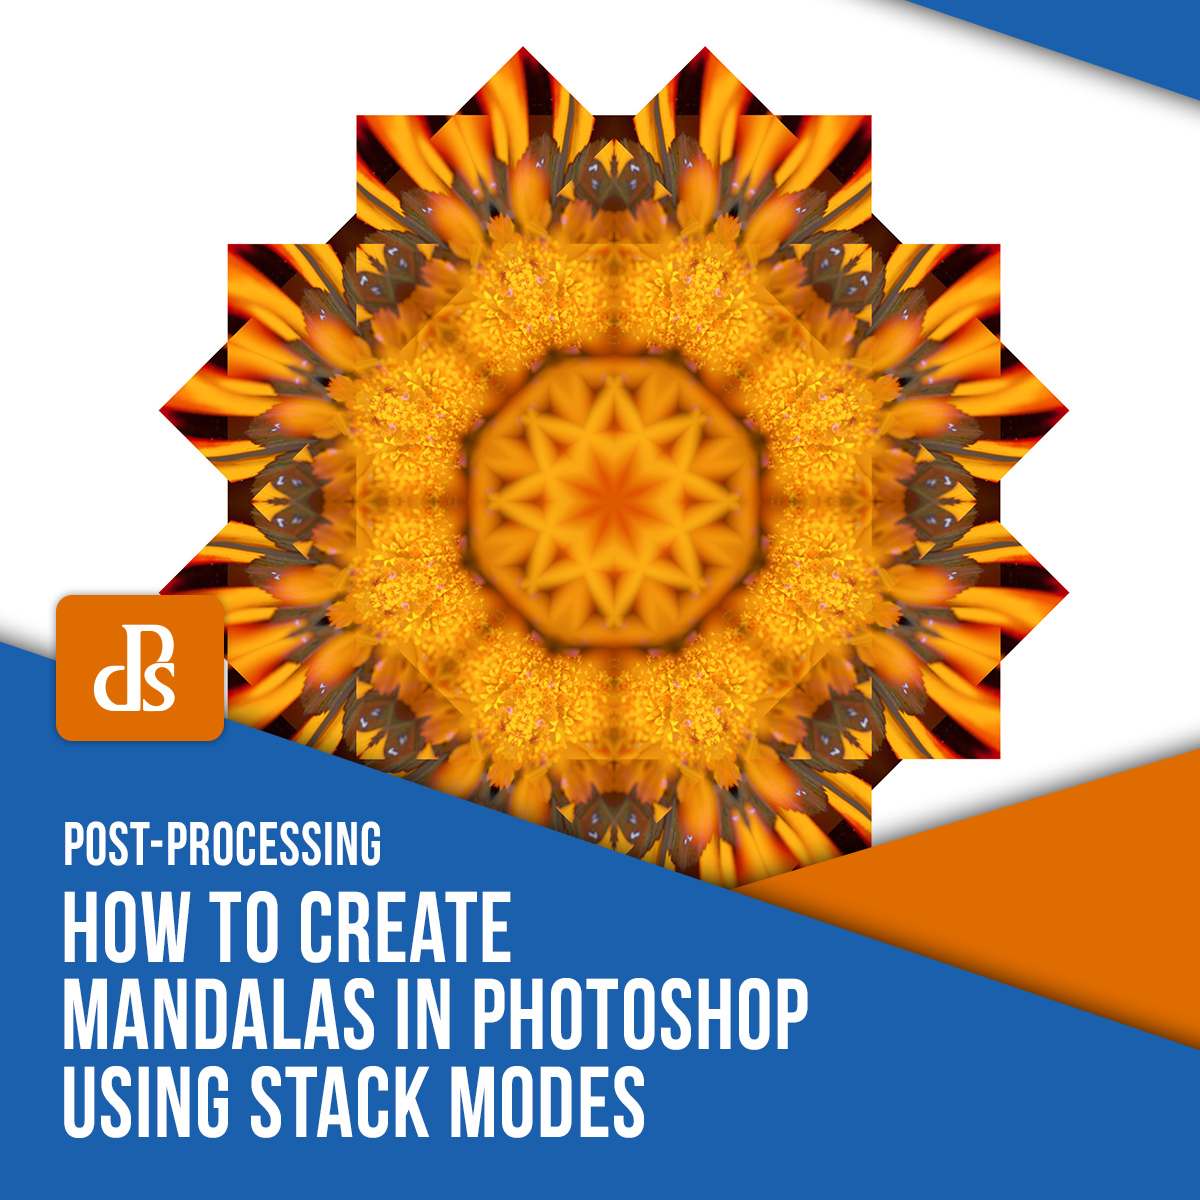 create mandalas in photoshop with stack modes